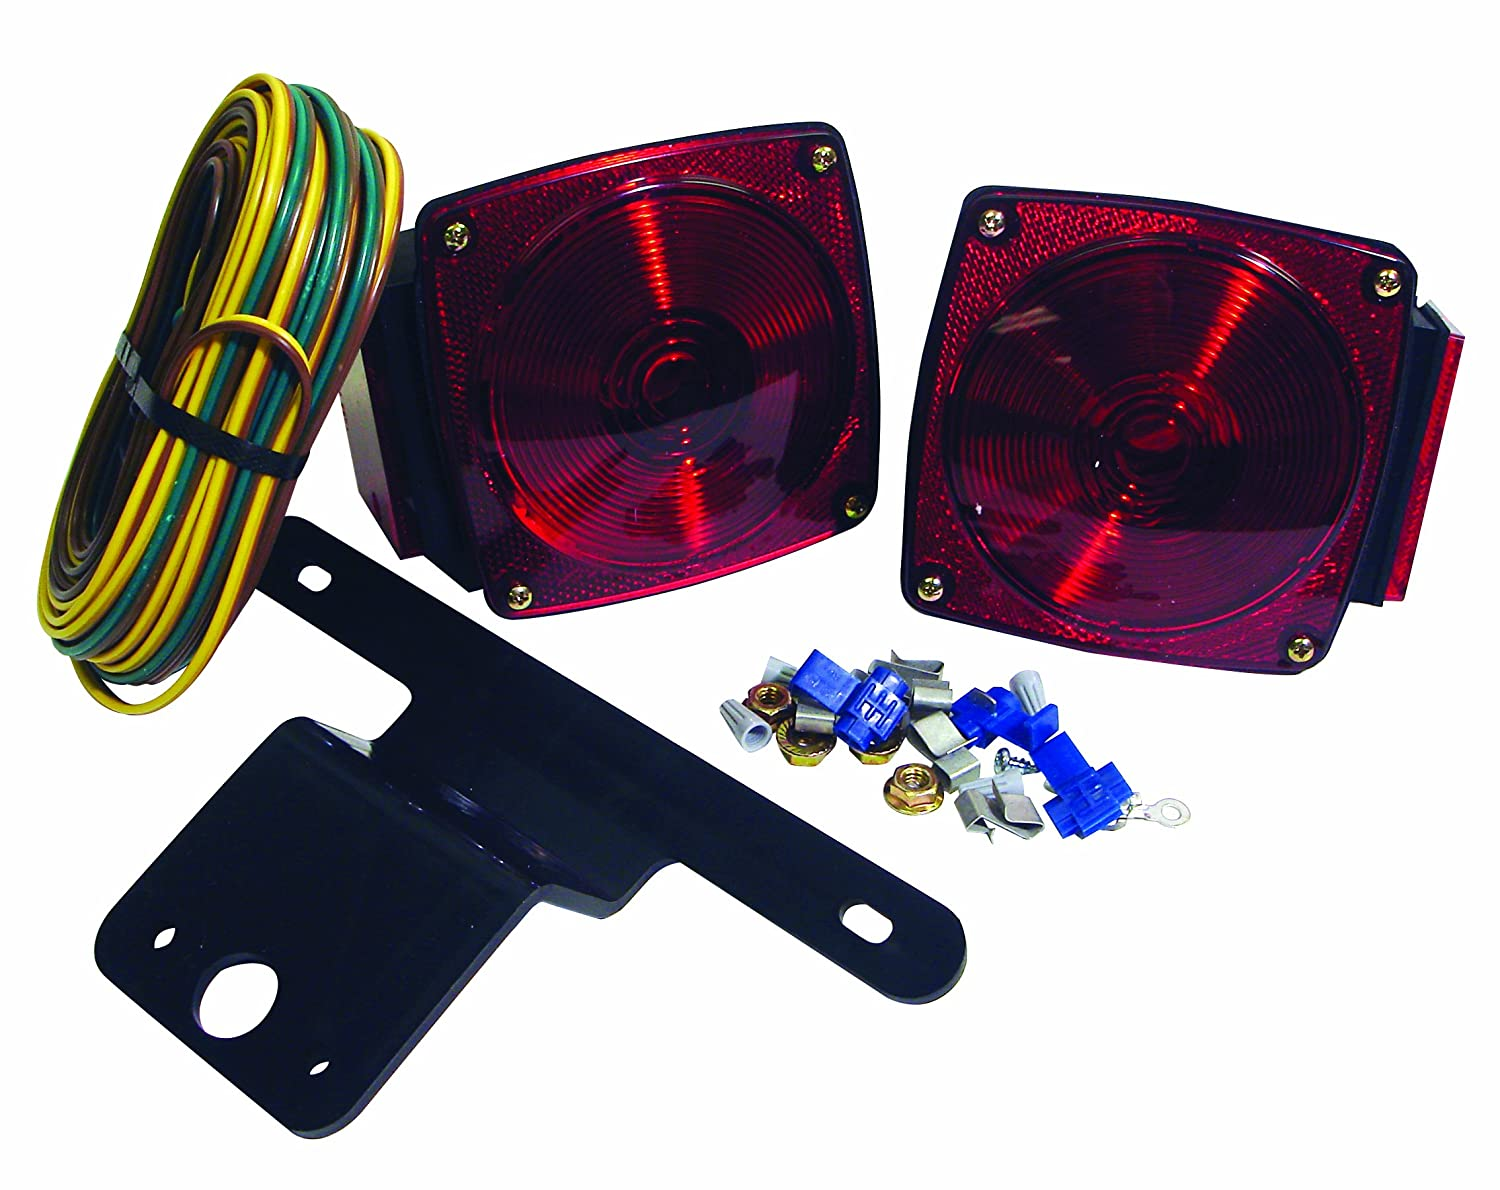 Amazon attwood submersible trailer light kit boat trailer amazon attwood submersible trailer light kit boat trailer lights sports outdoors sciox Gallery